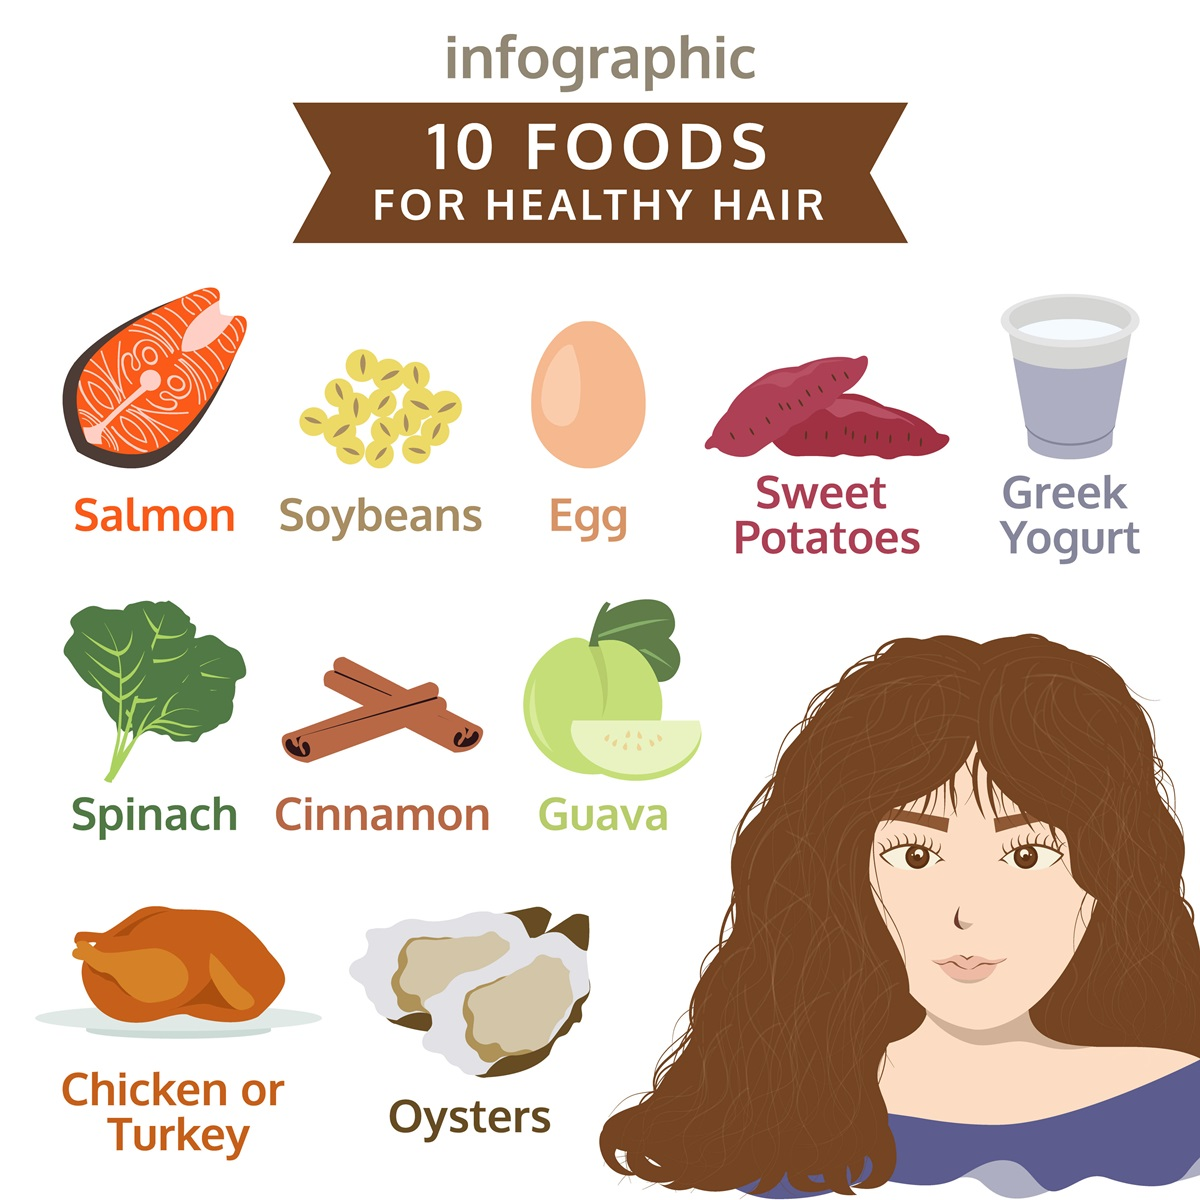 10-foods-for-healthier-hair-infographic